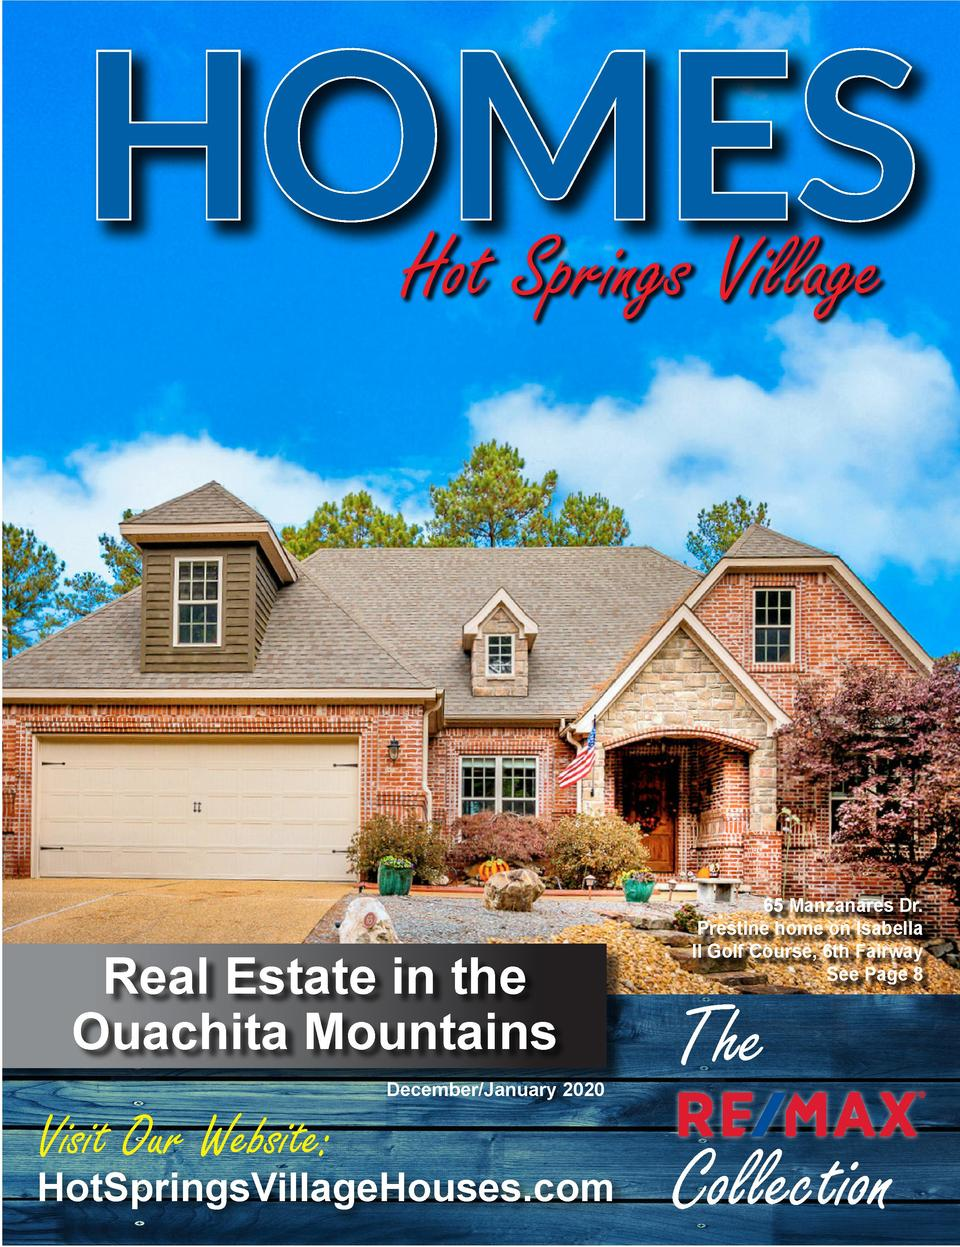 HOMES Hot Springs Village  Real Estate in the Ouachita Mountains  Visit Our Website   December January 2020  HotSpringsVil...